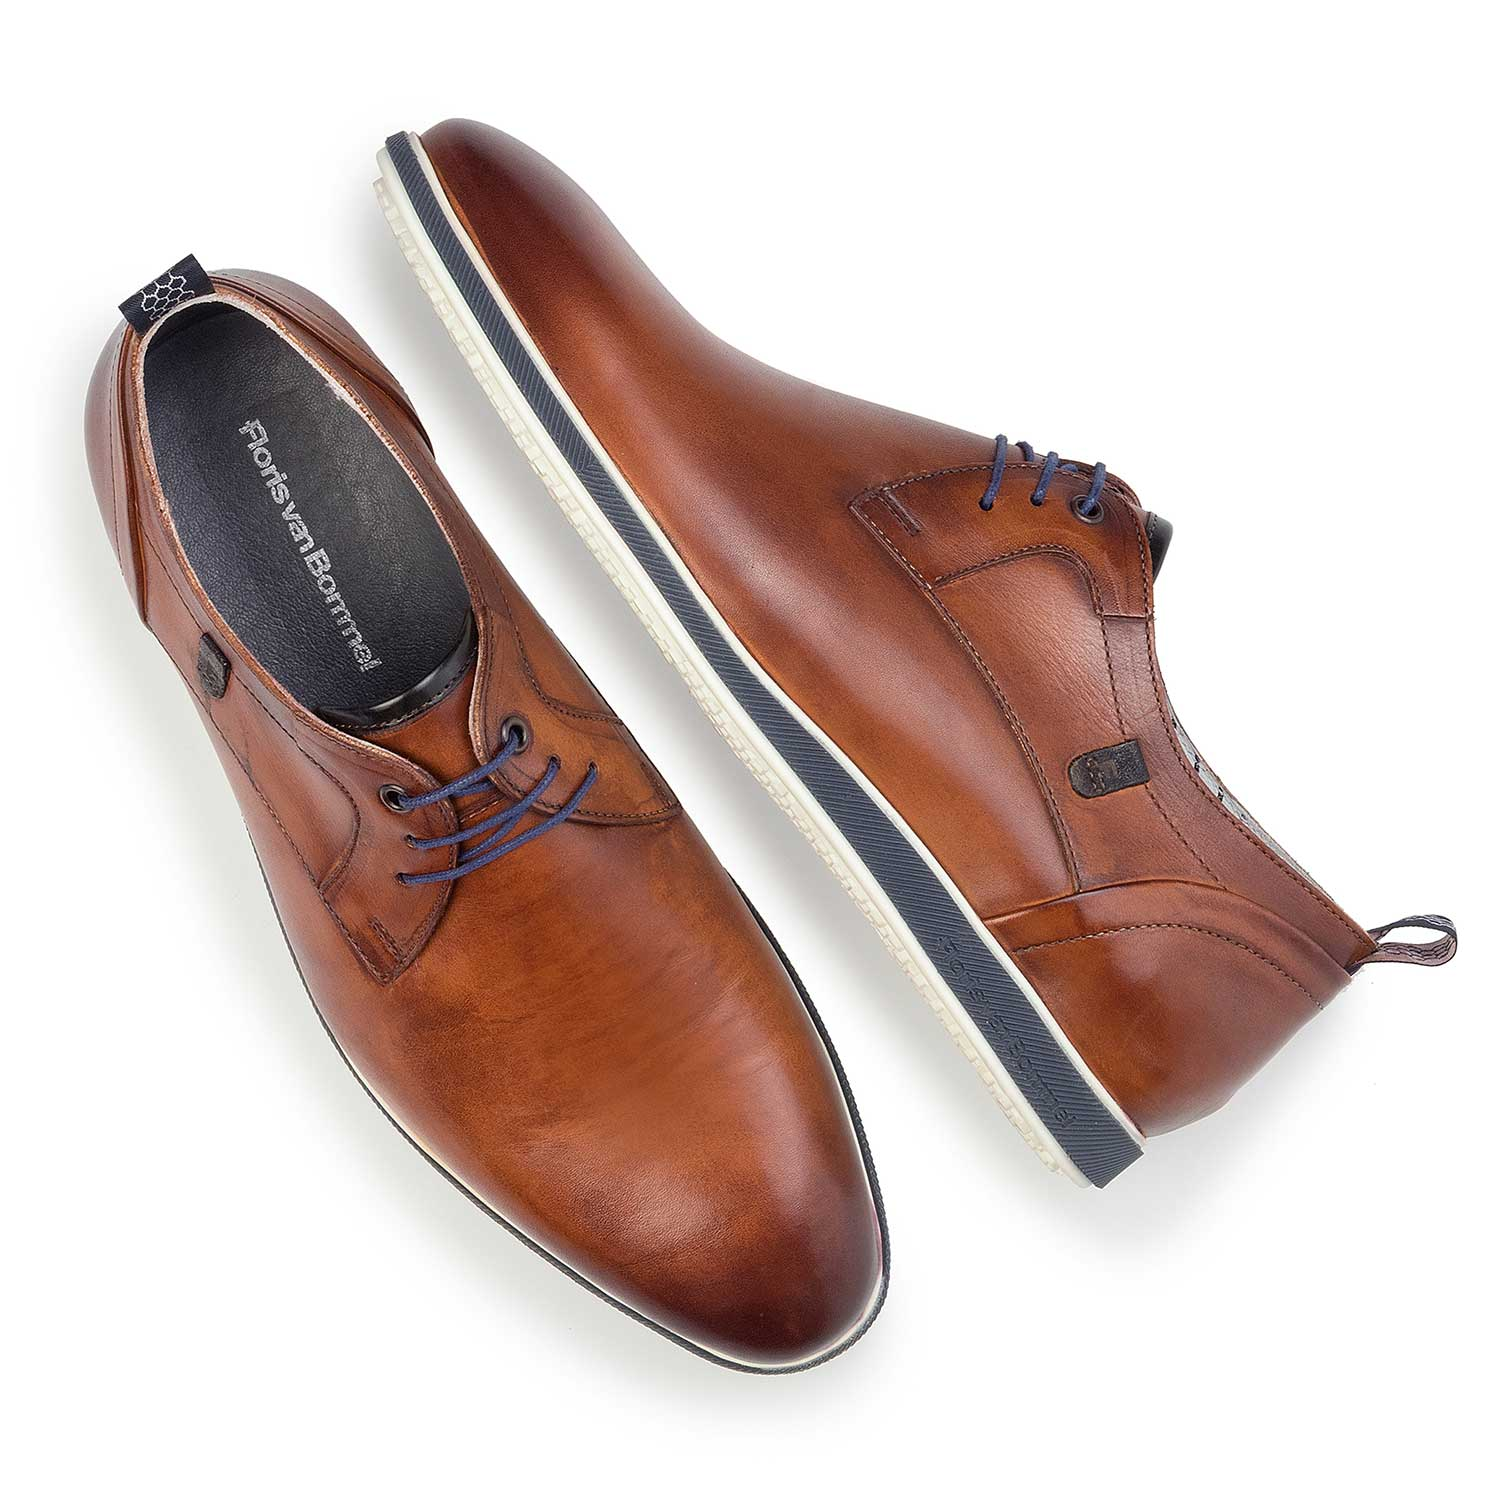 14076/03 - Cognac-coloured leather lace shoe